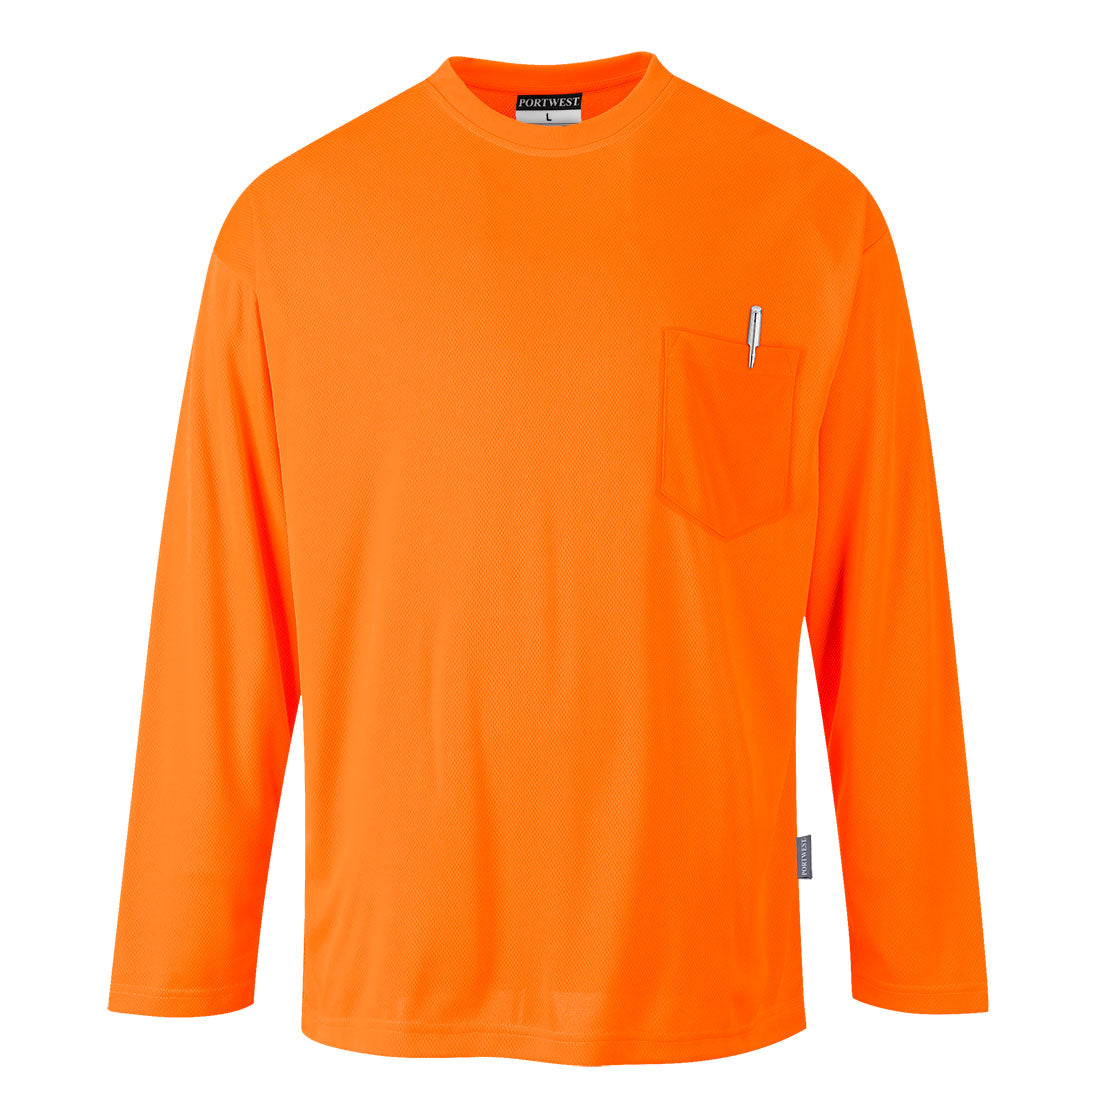 Portwest S579 Non ANSI Pocket Long Sleeve T-Shirt